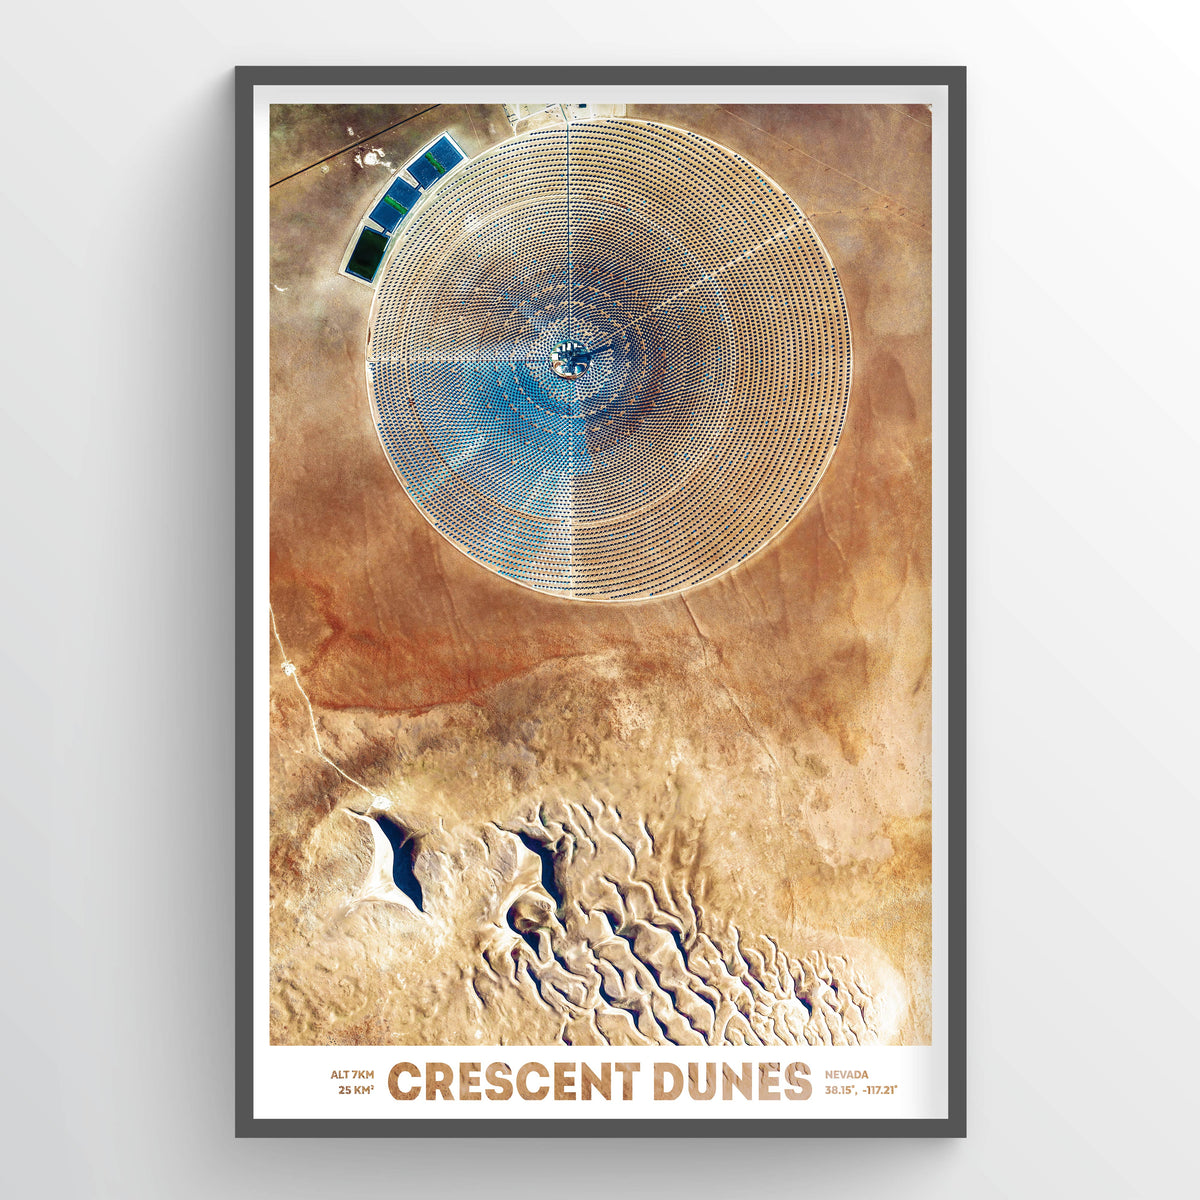 Crescent Dunes Earth Photography - Art Print - Point Two Design